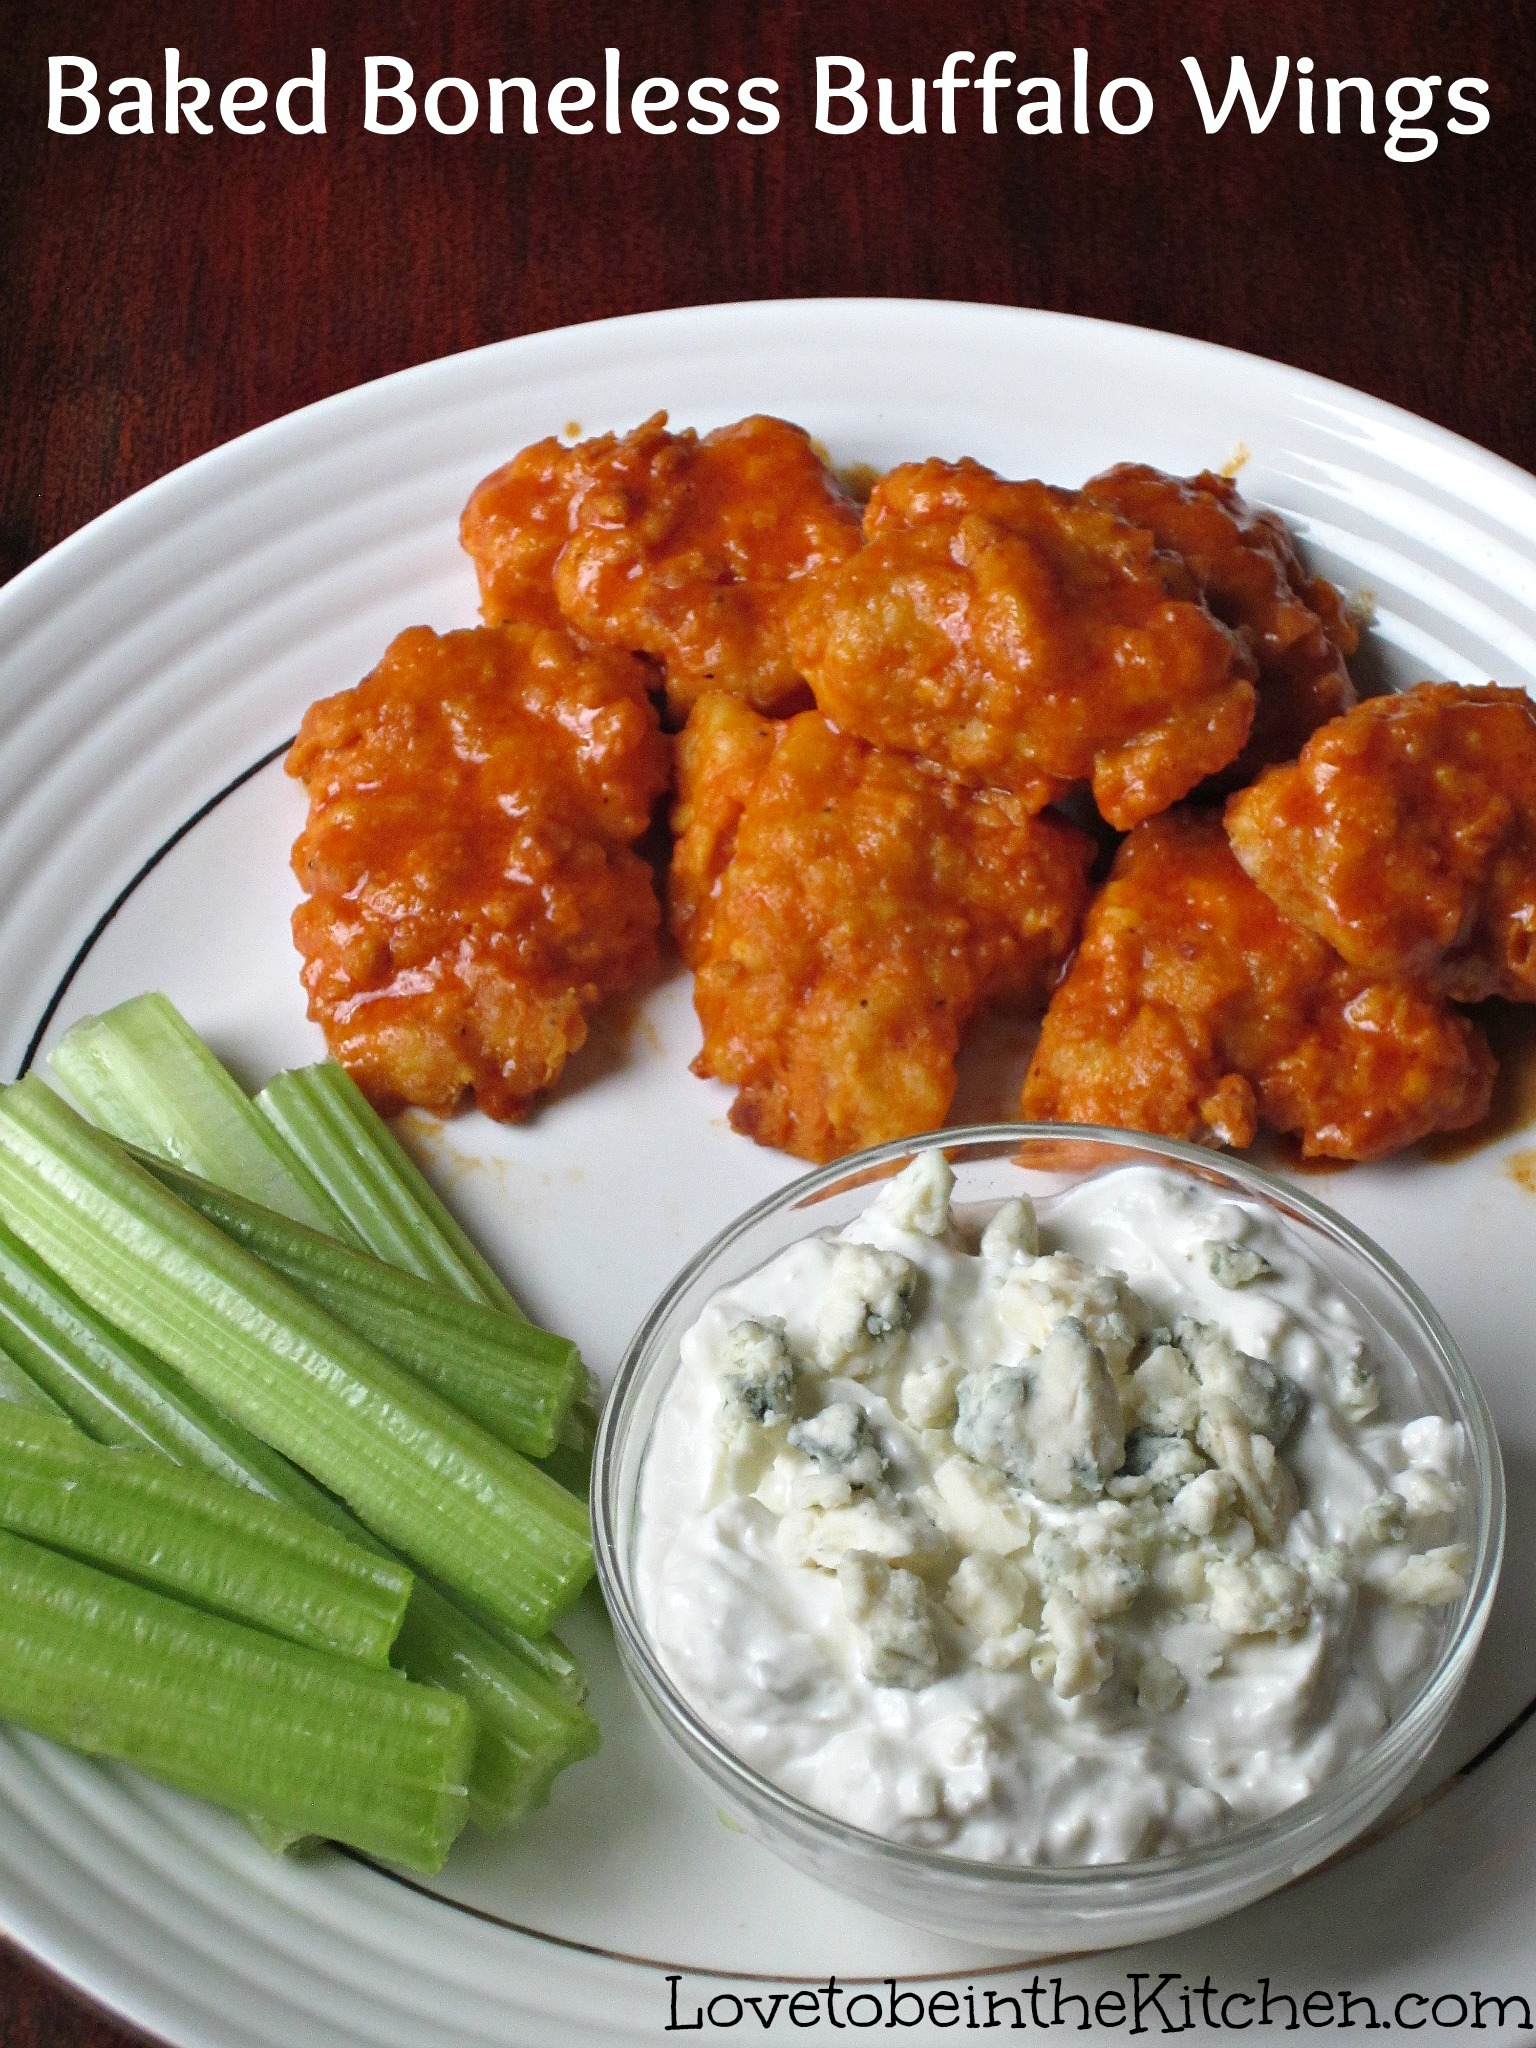 How To Make Homemade Buffalo Wild Wings - Chimney Product